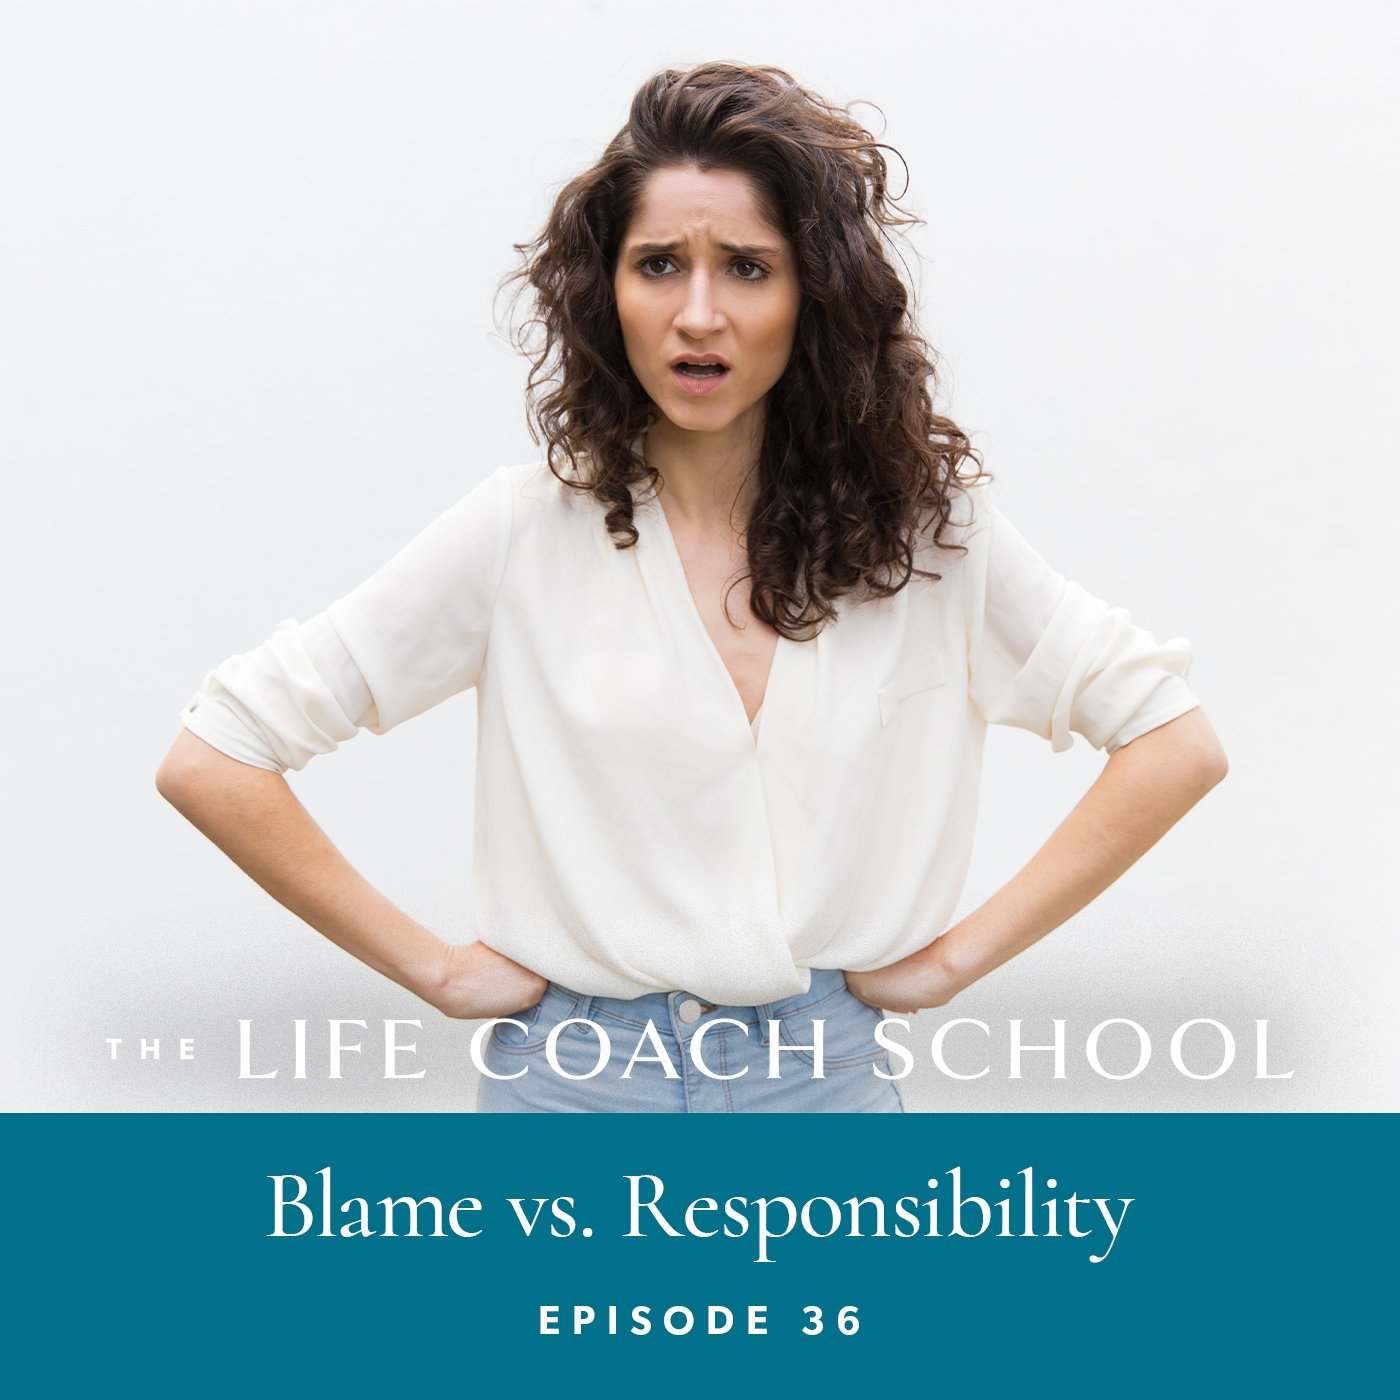 The Life Coach School Podcast with Brooke Castillo | Episode 36 | Blame vs. Responsibility